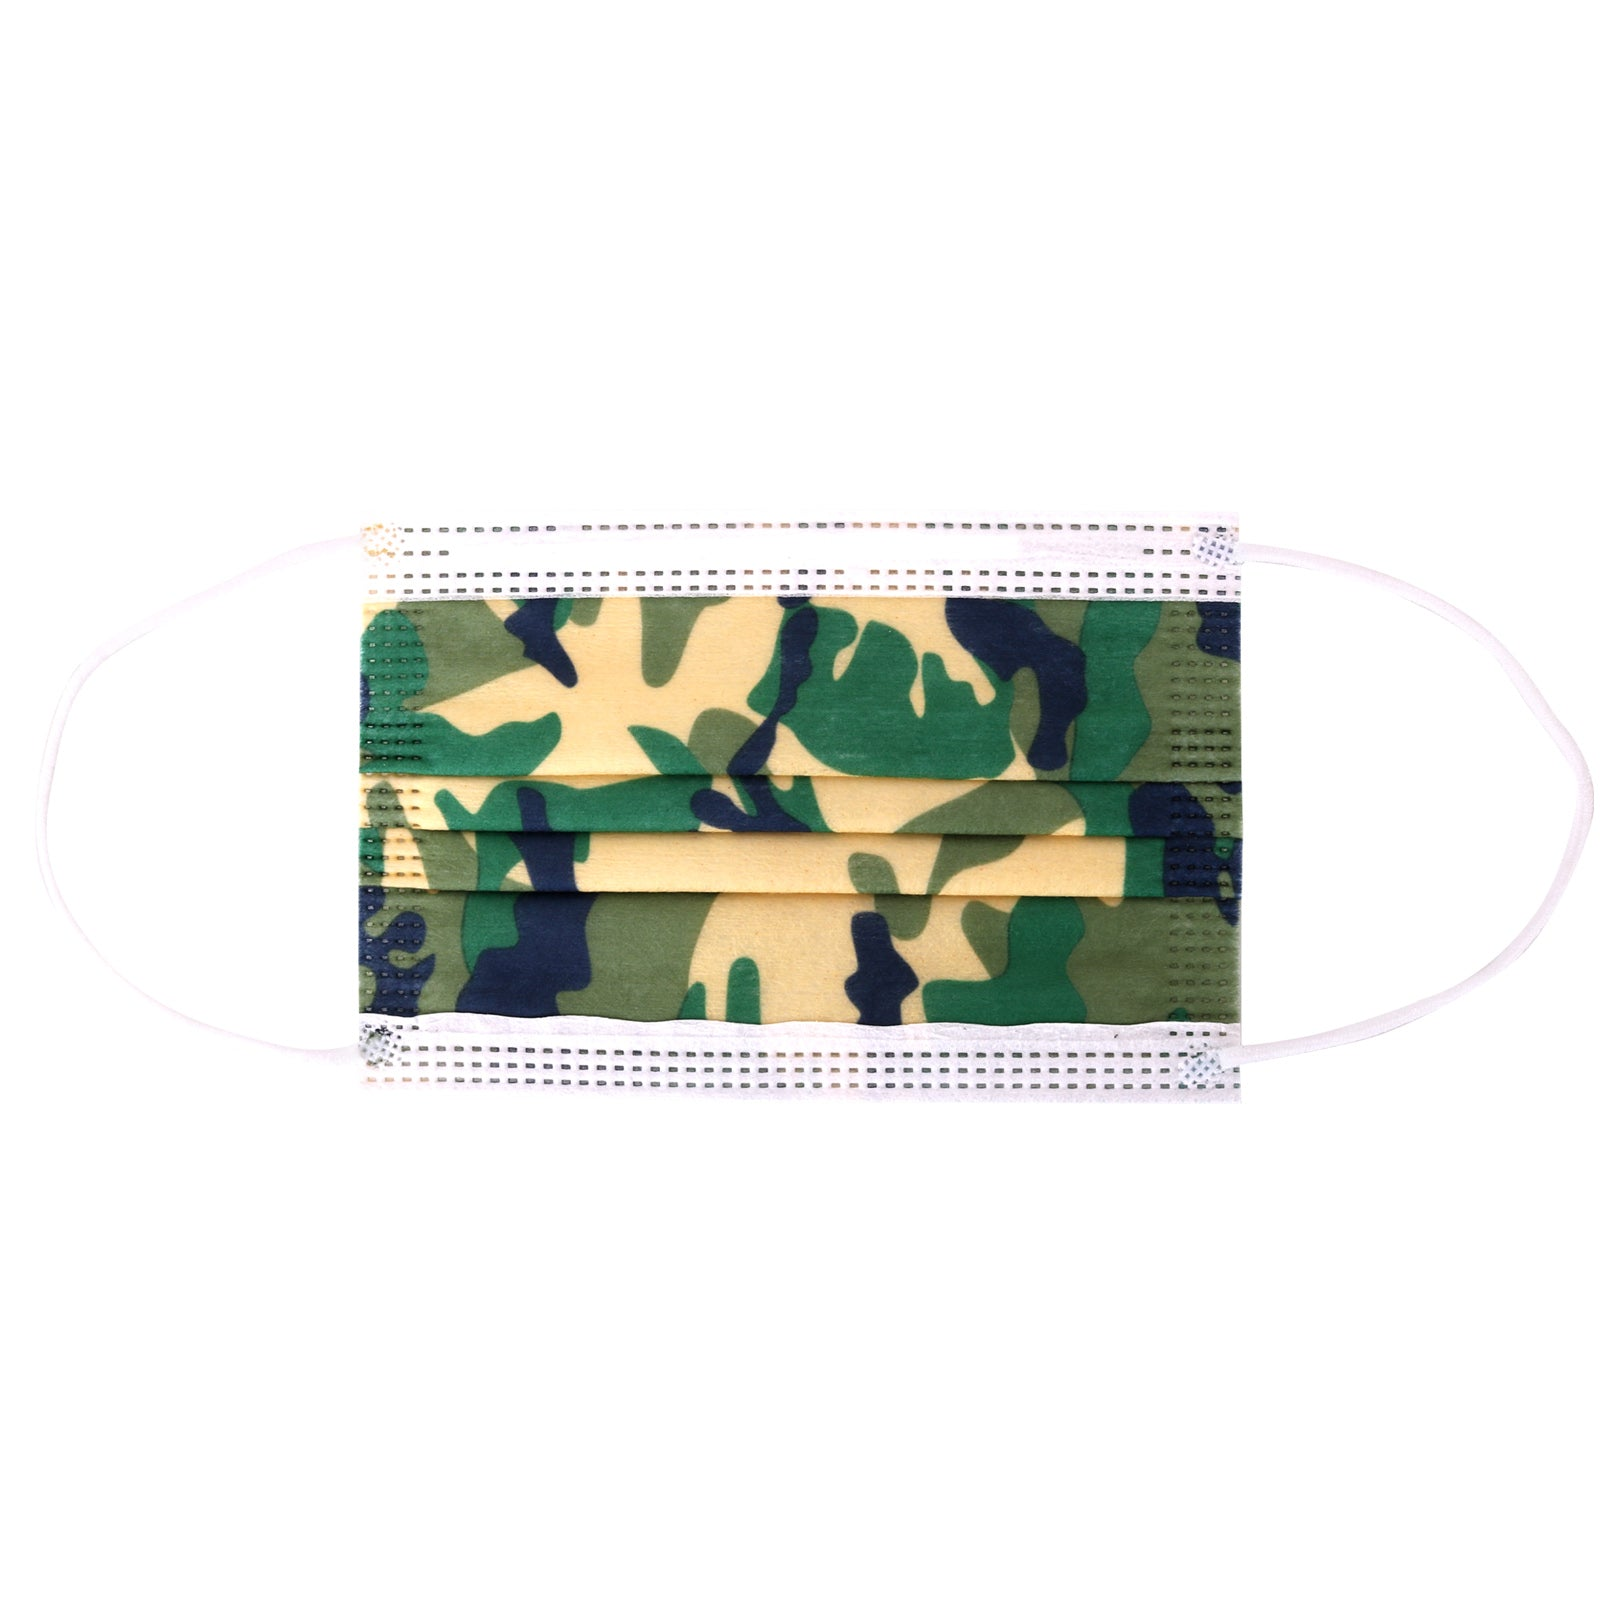 KD-FMGN  American Bling Kids 3 Ply Disposable Green Camo Face Mask Non-Medical (5pcs/Pack)